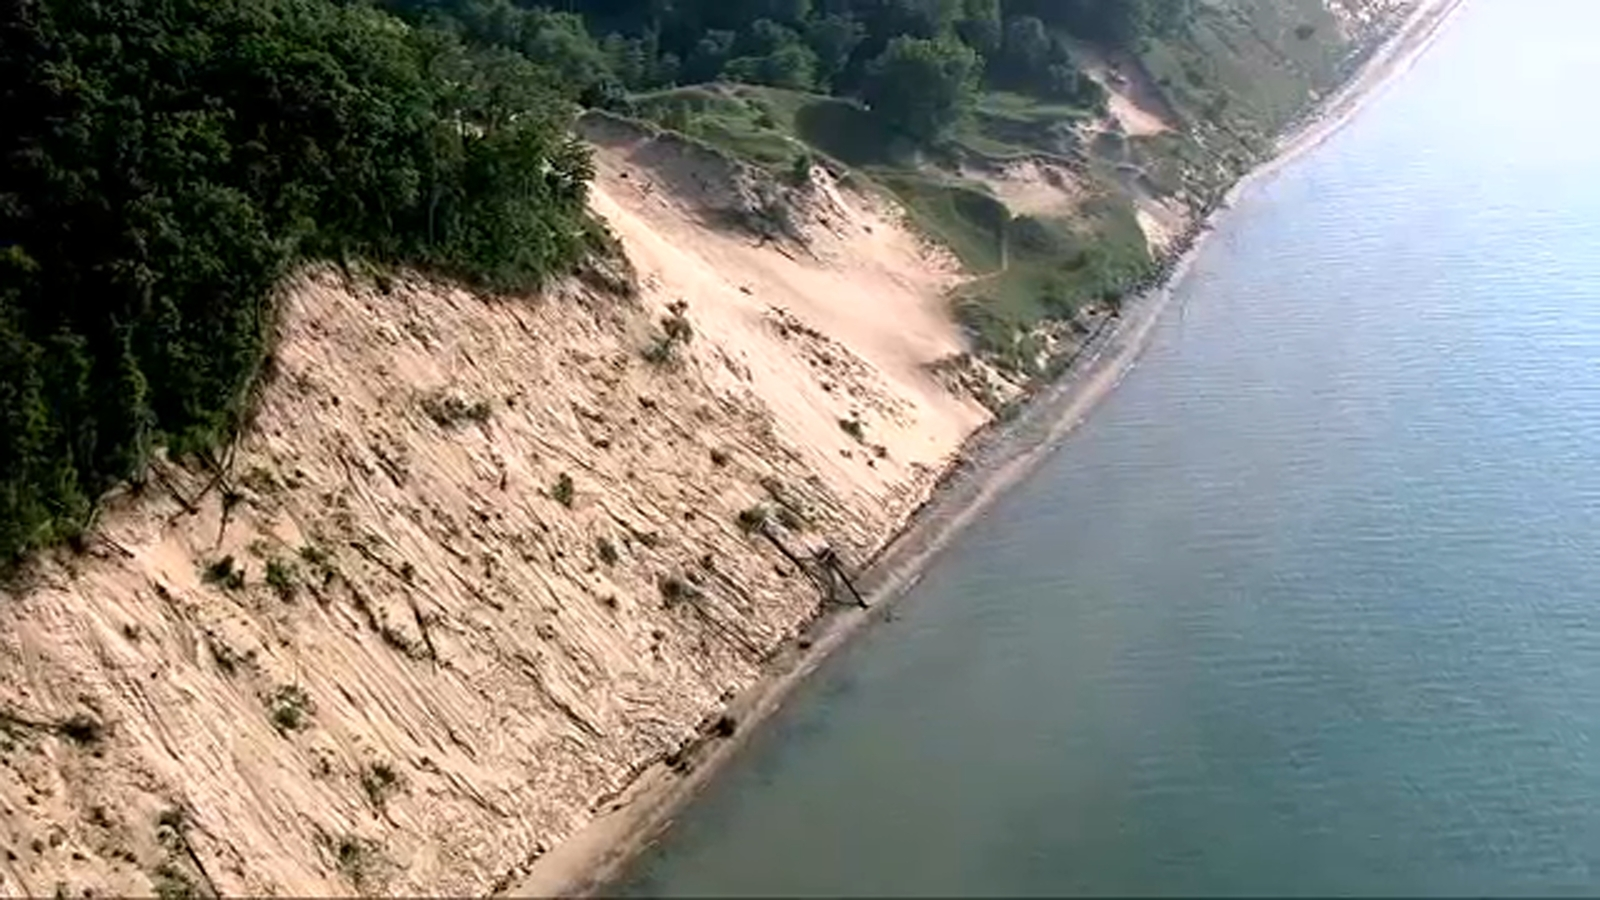 Steel plant dumps cyanide into Little Calumet River, killing fish and shutting down Indiana Dunes